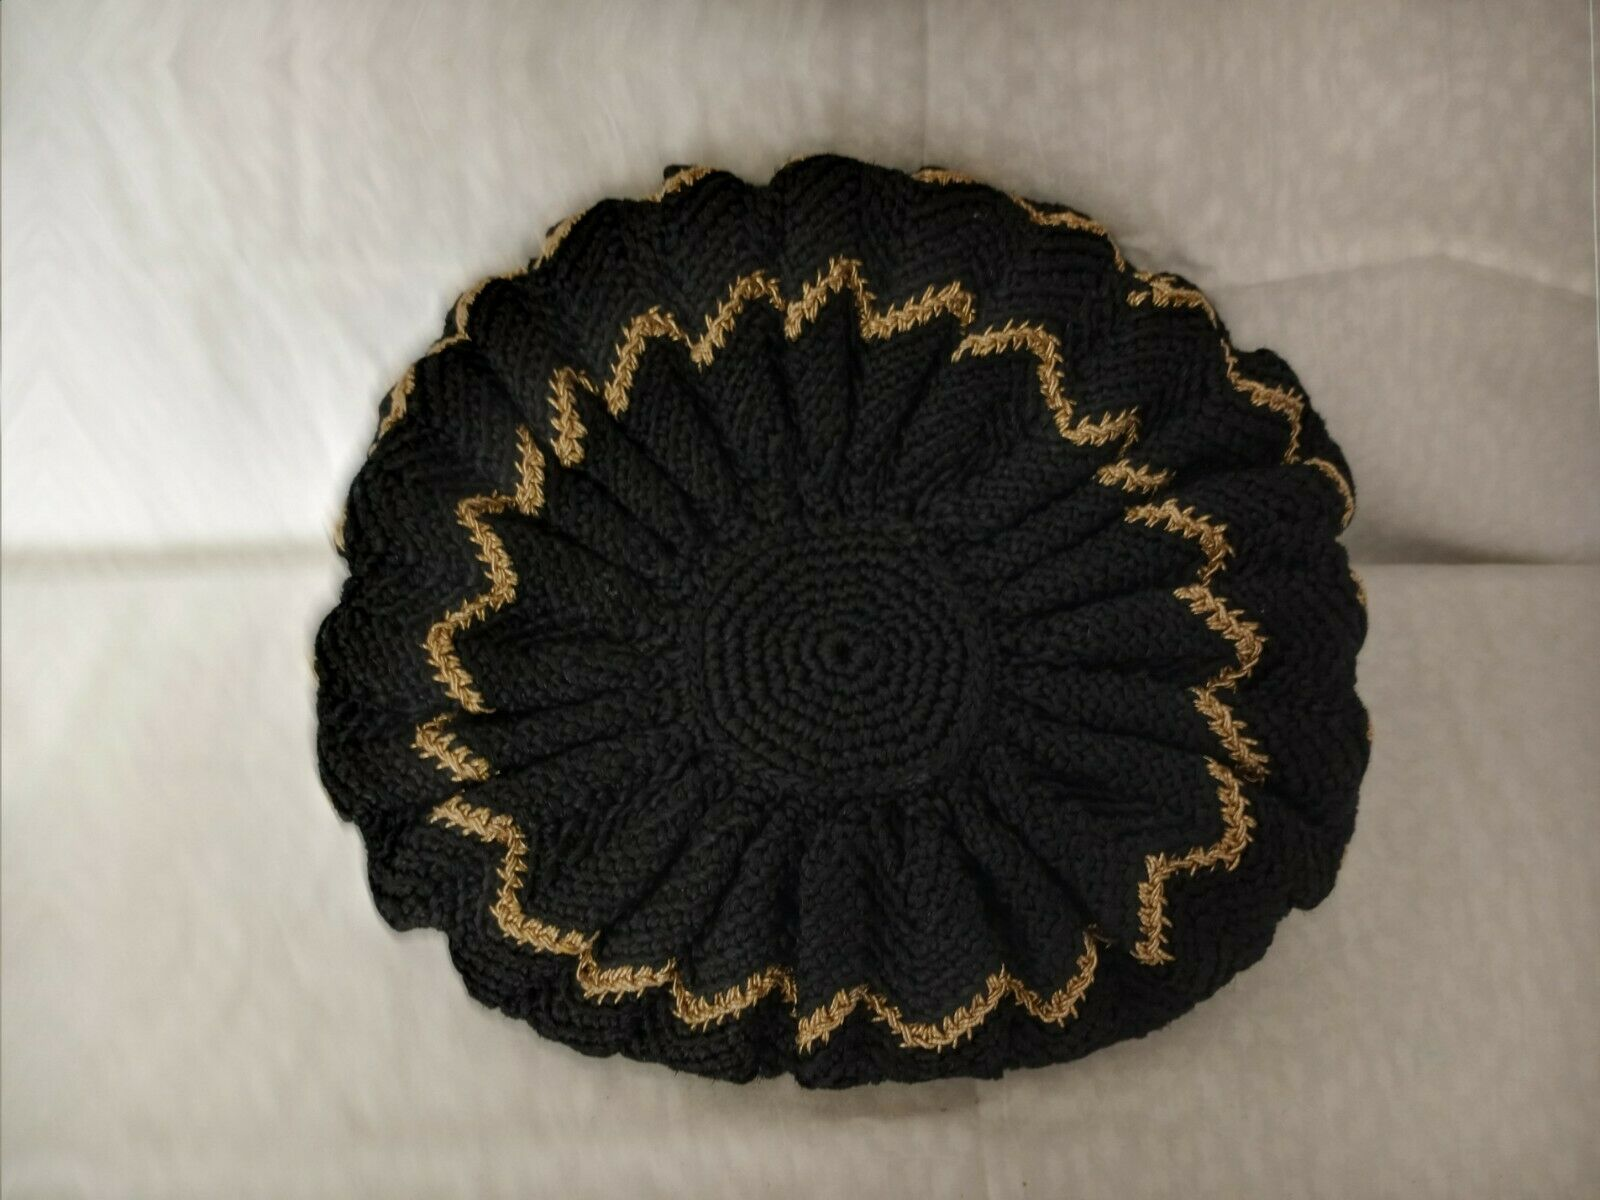 VINTAGE 1940s - 1950s Black and Gold Knitted Beret